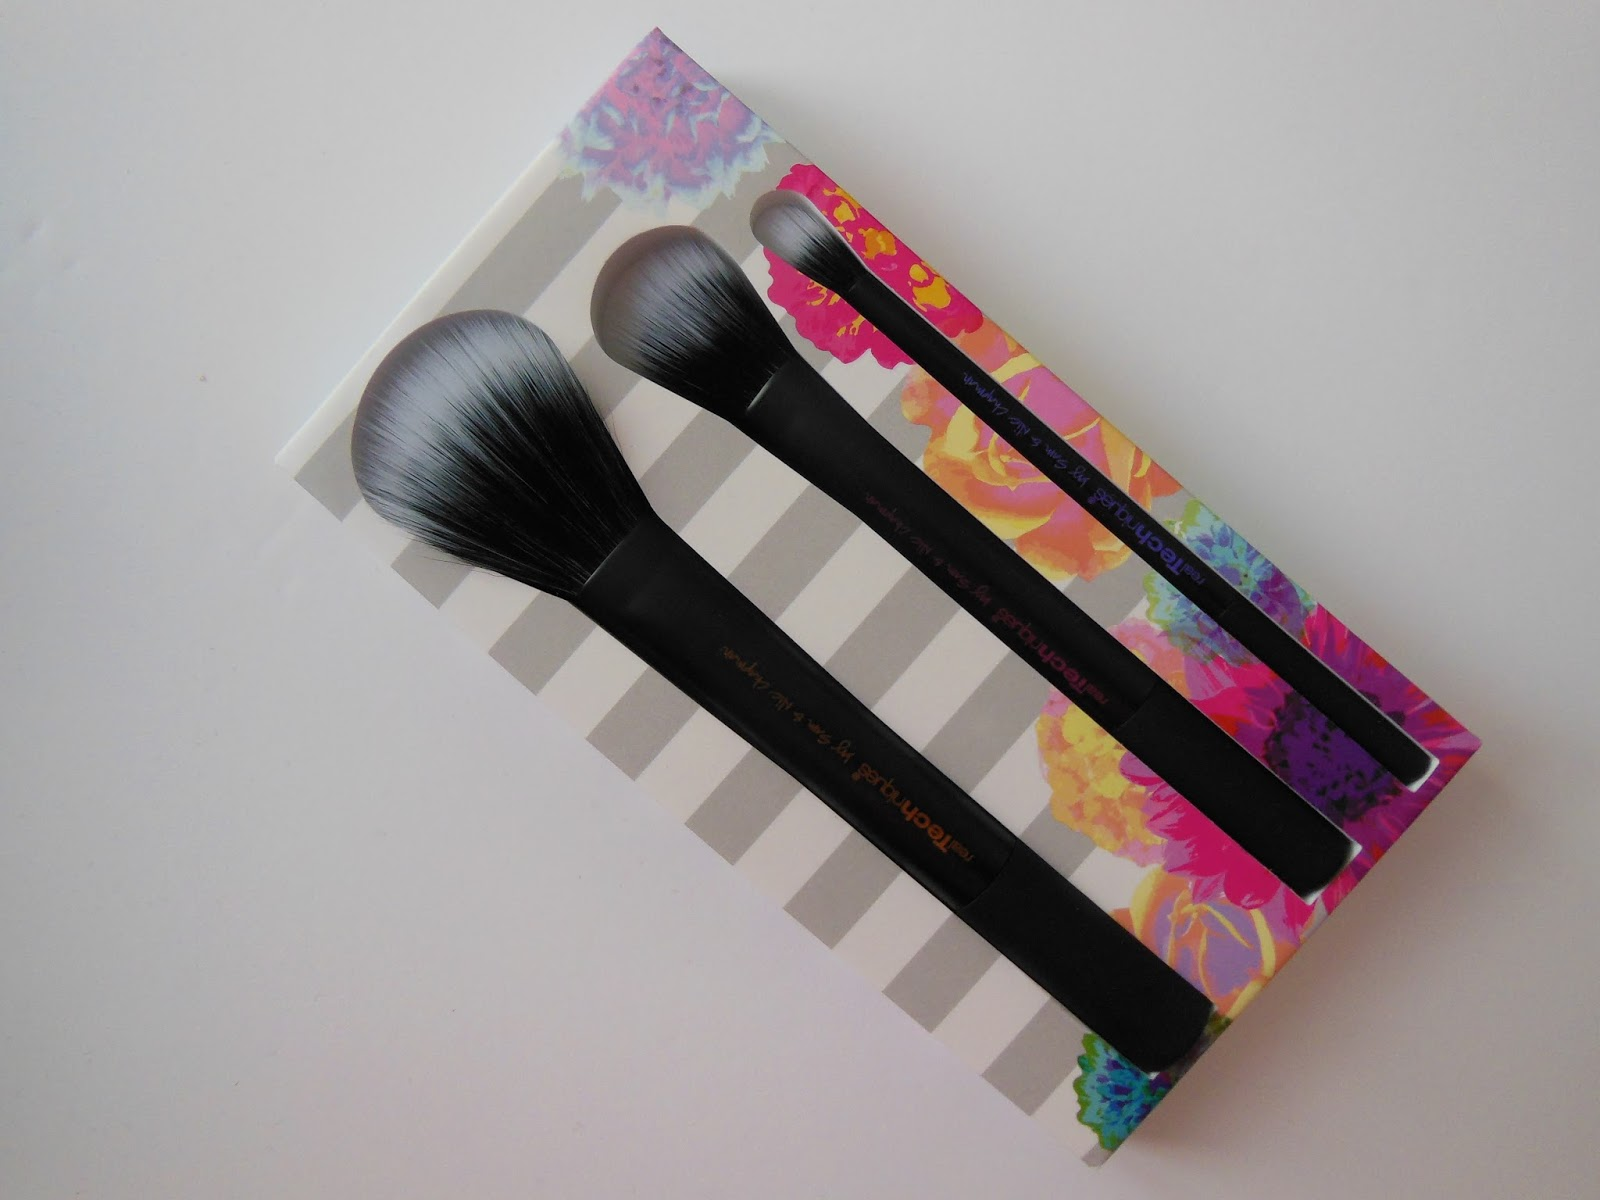 Real Techniques limited edition duo fibre brush set